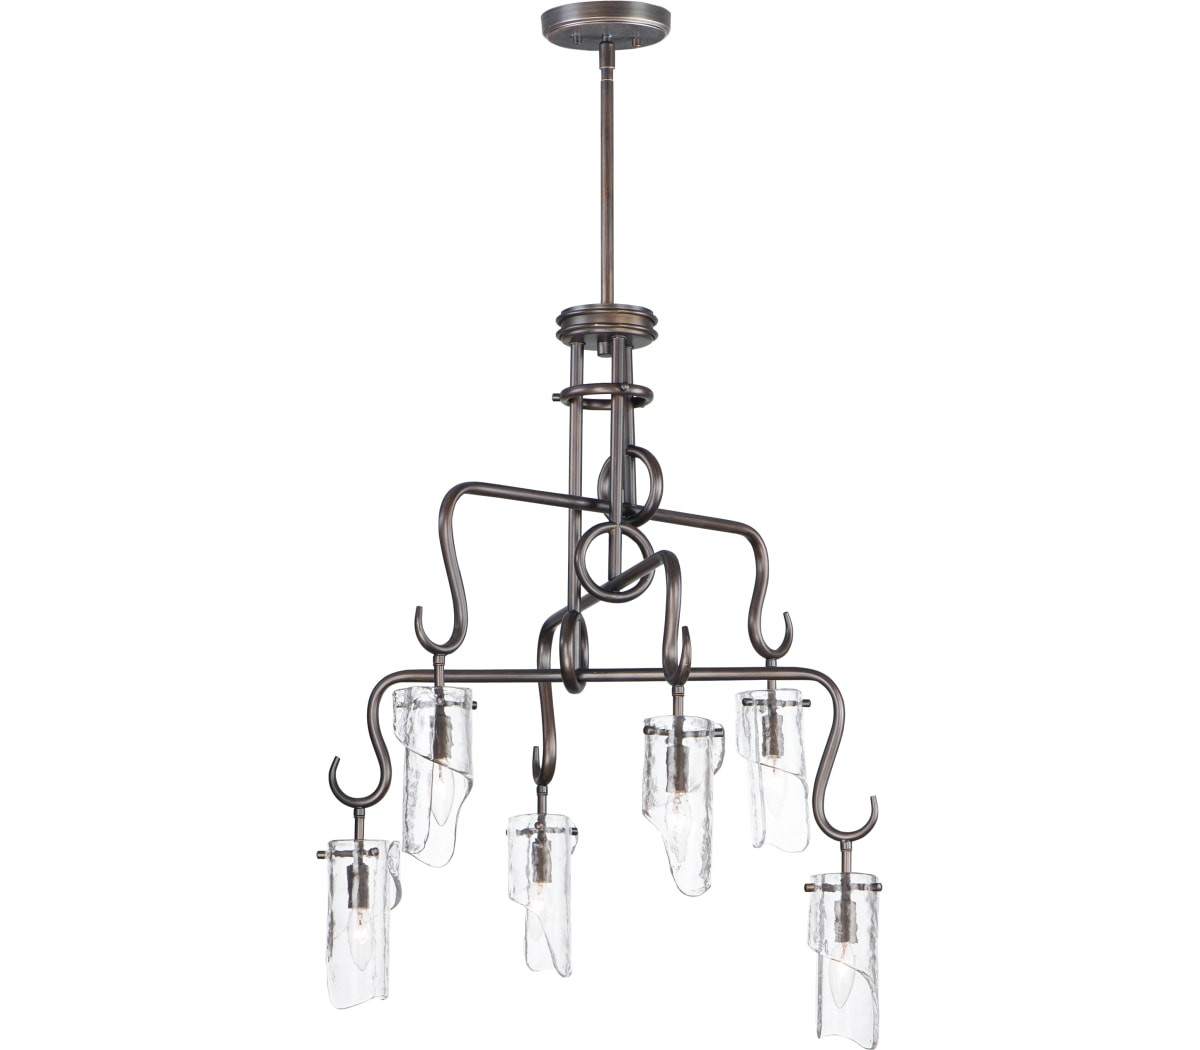 maxim lighting citadel maxim-citadel-chandelier-1